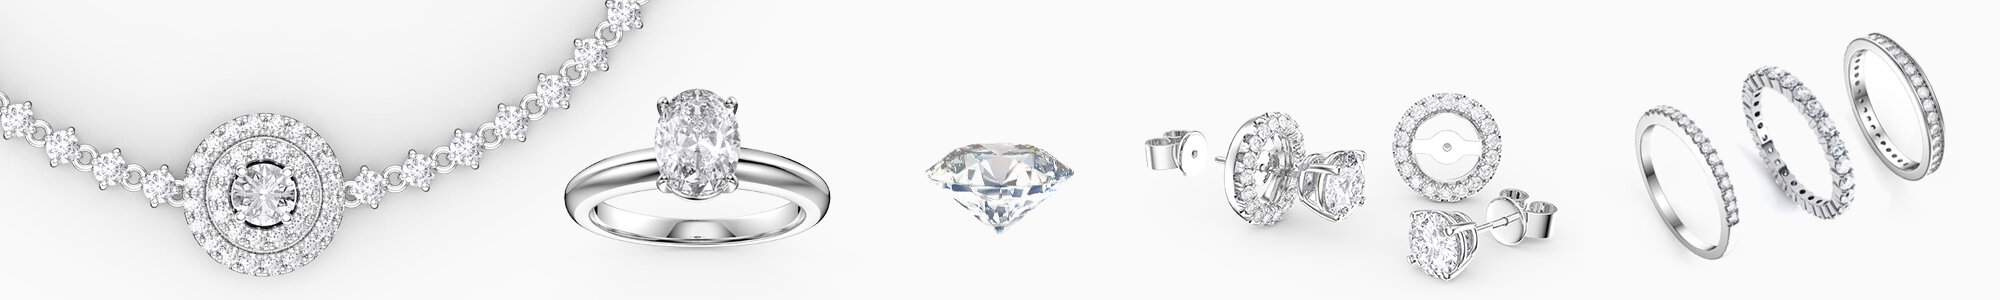 Shop Diamond Jewellery by Jian London. Choose from a great selection of Rings, Earrings, Necklaces, Bracelets, Pendants, Lockets and more at everyday low prices from Jian London. Free UK Delivery.